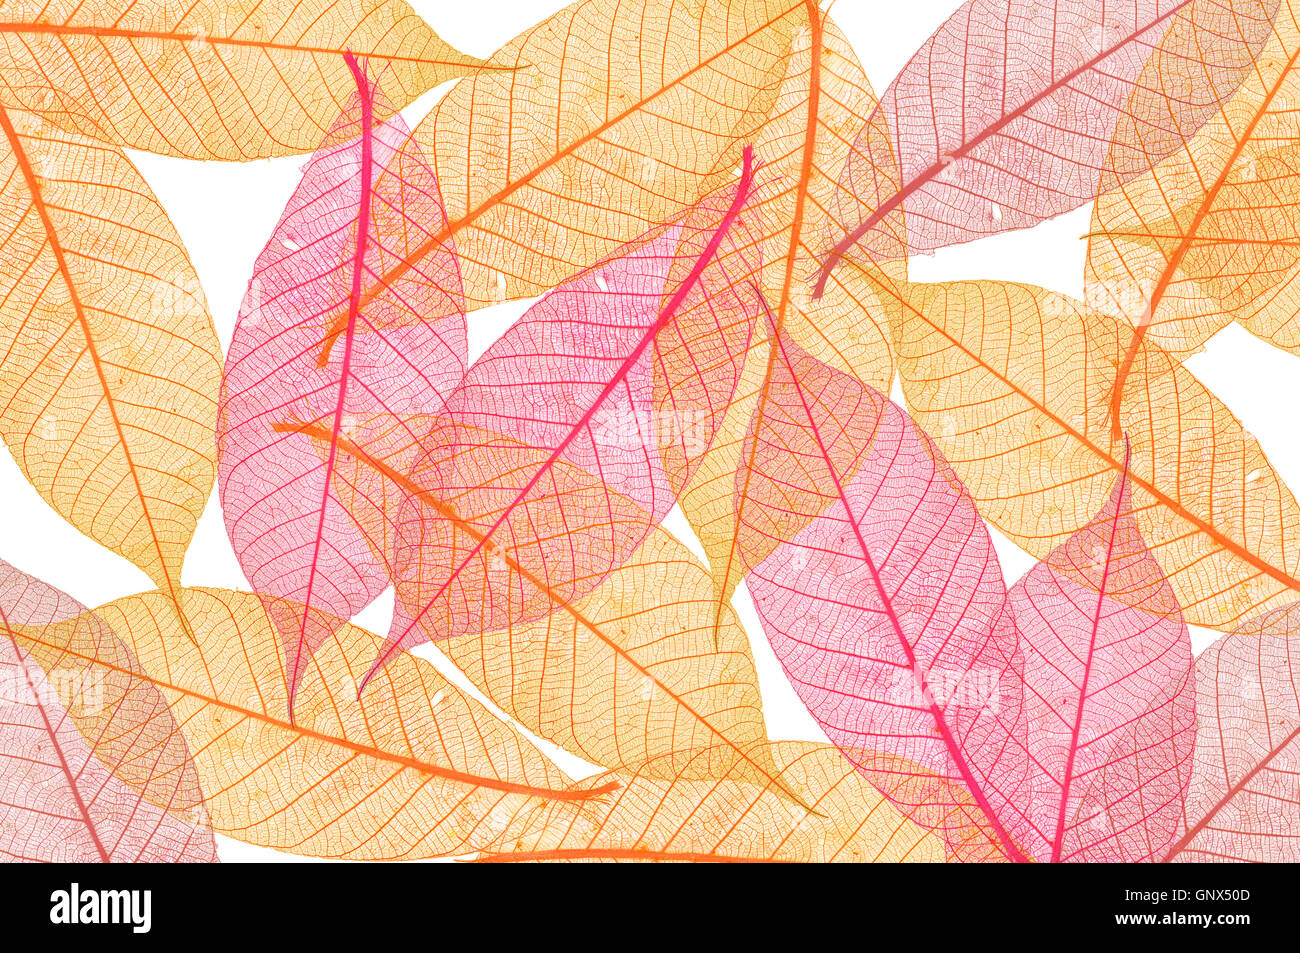 Transparent Leaf Stock Photo